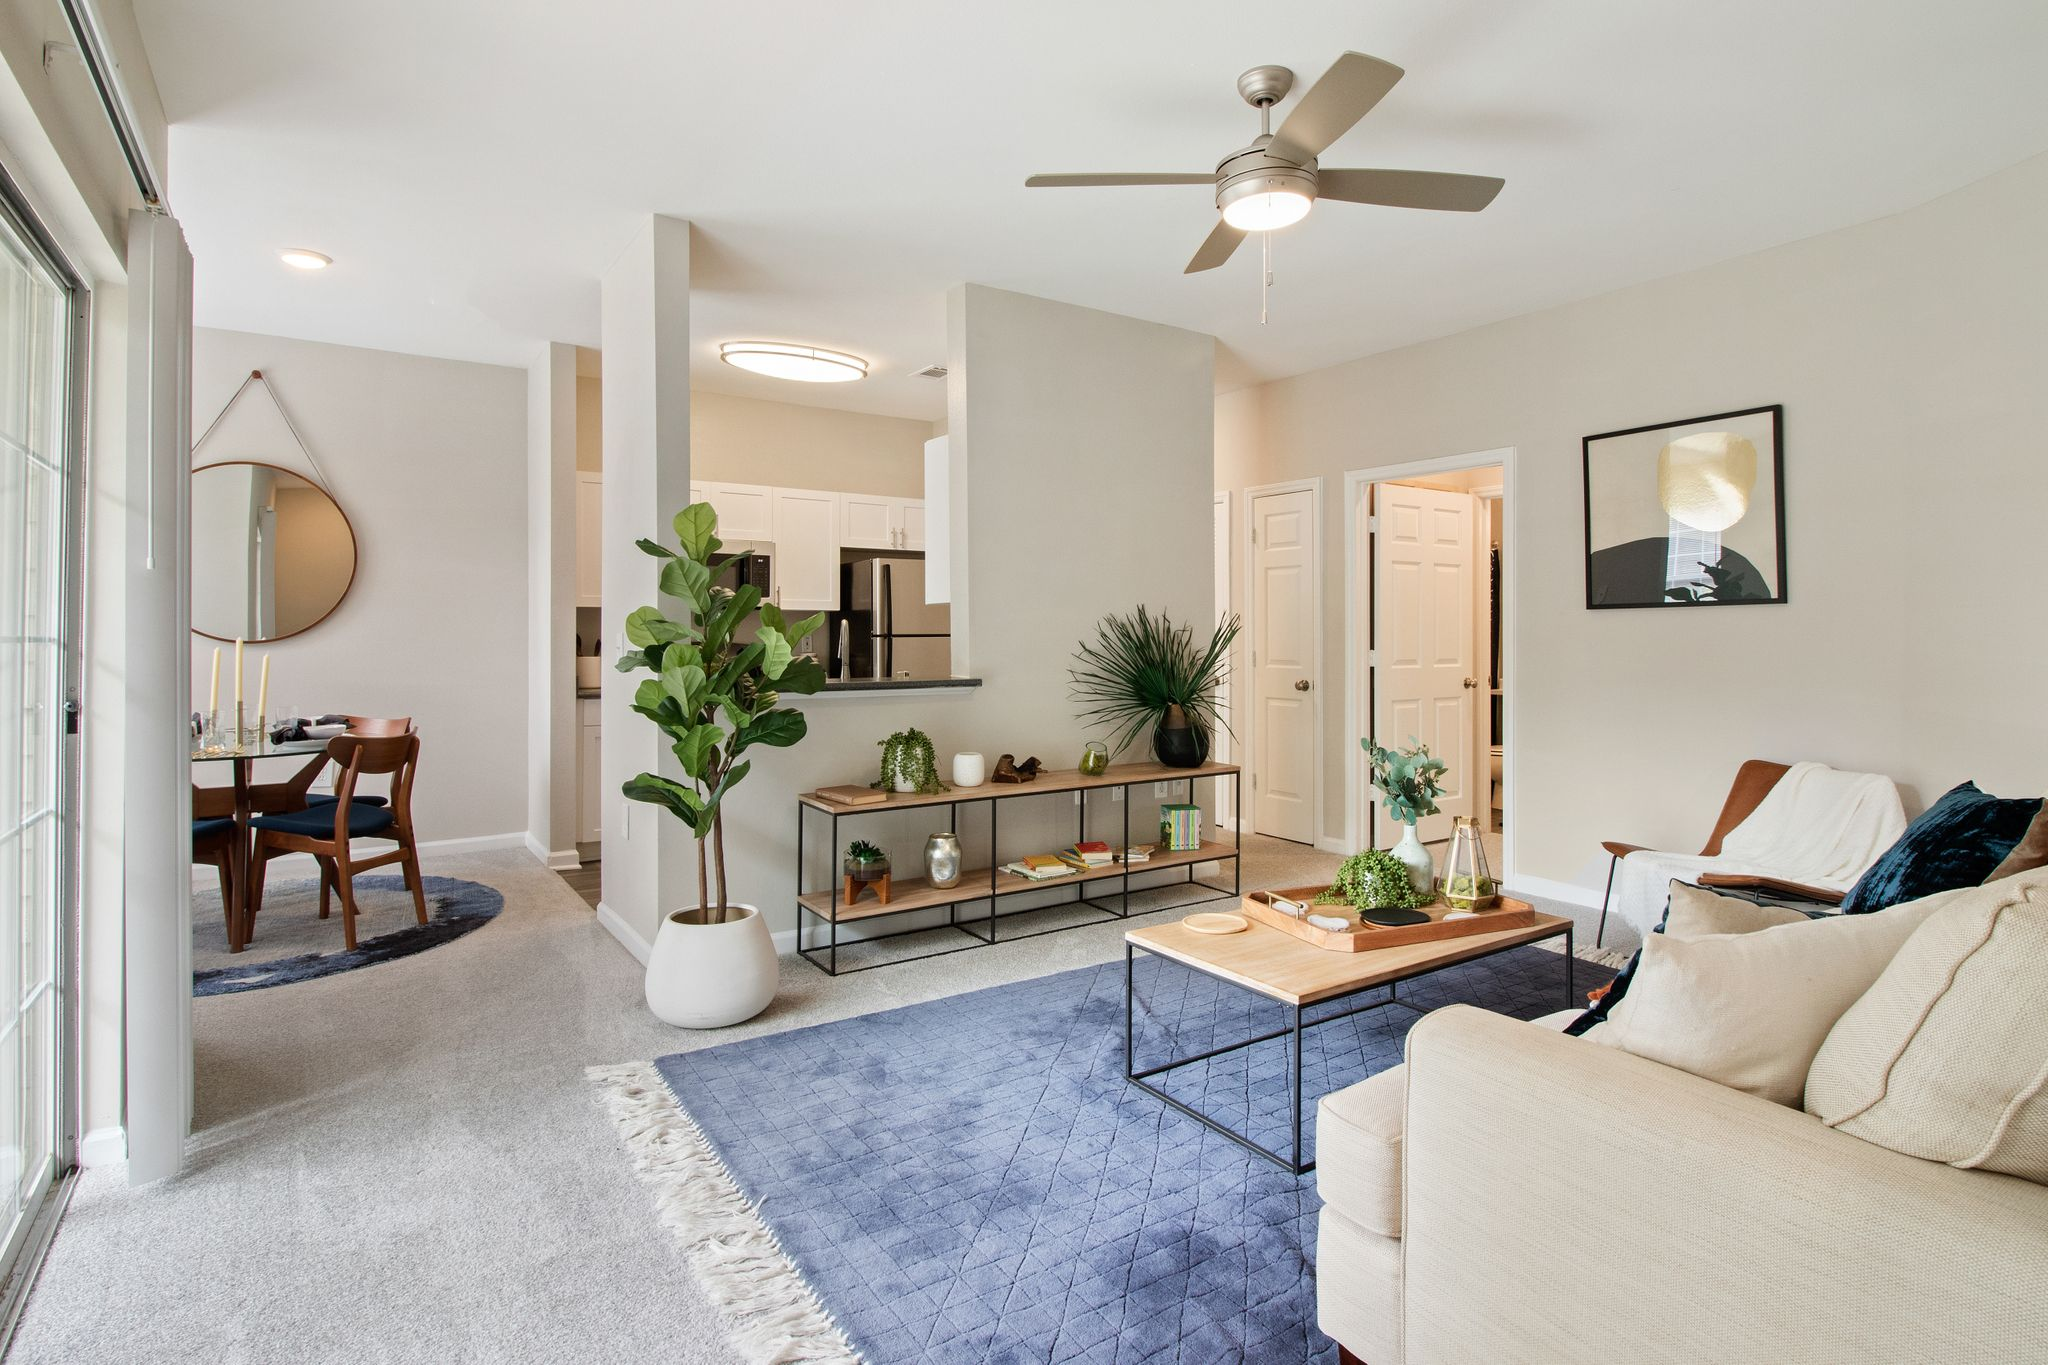 The Enclave at Crossroads for rent